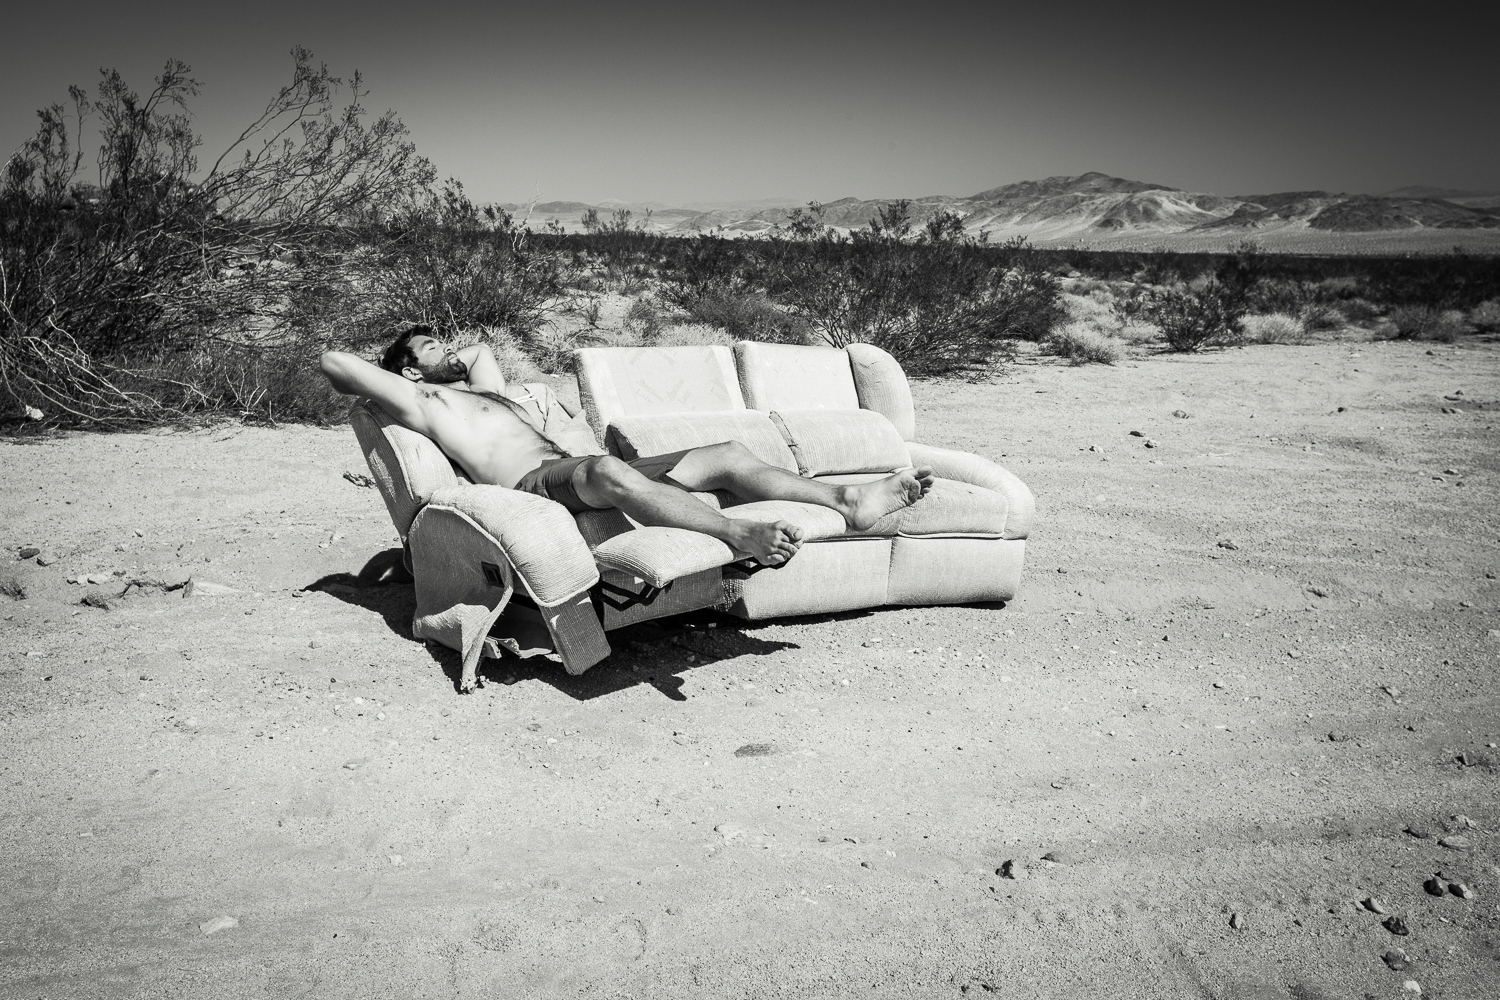 Taking a nap on an abandoned couch, somewhere in the middle of nowhere